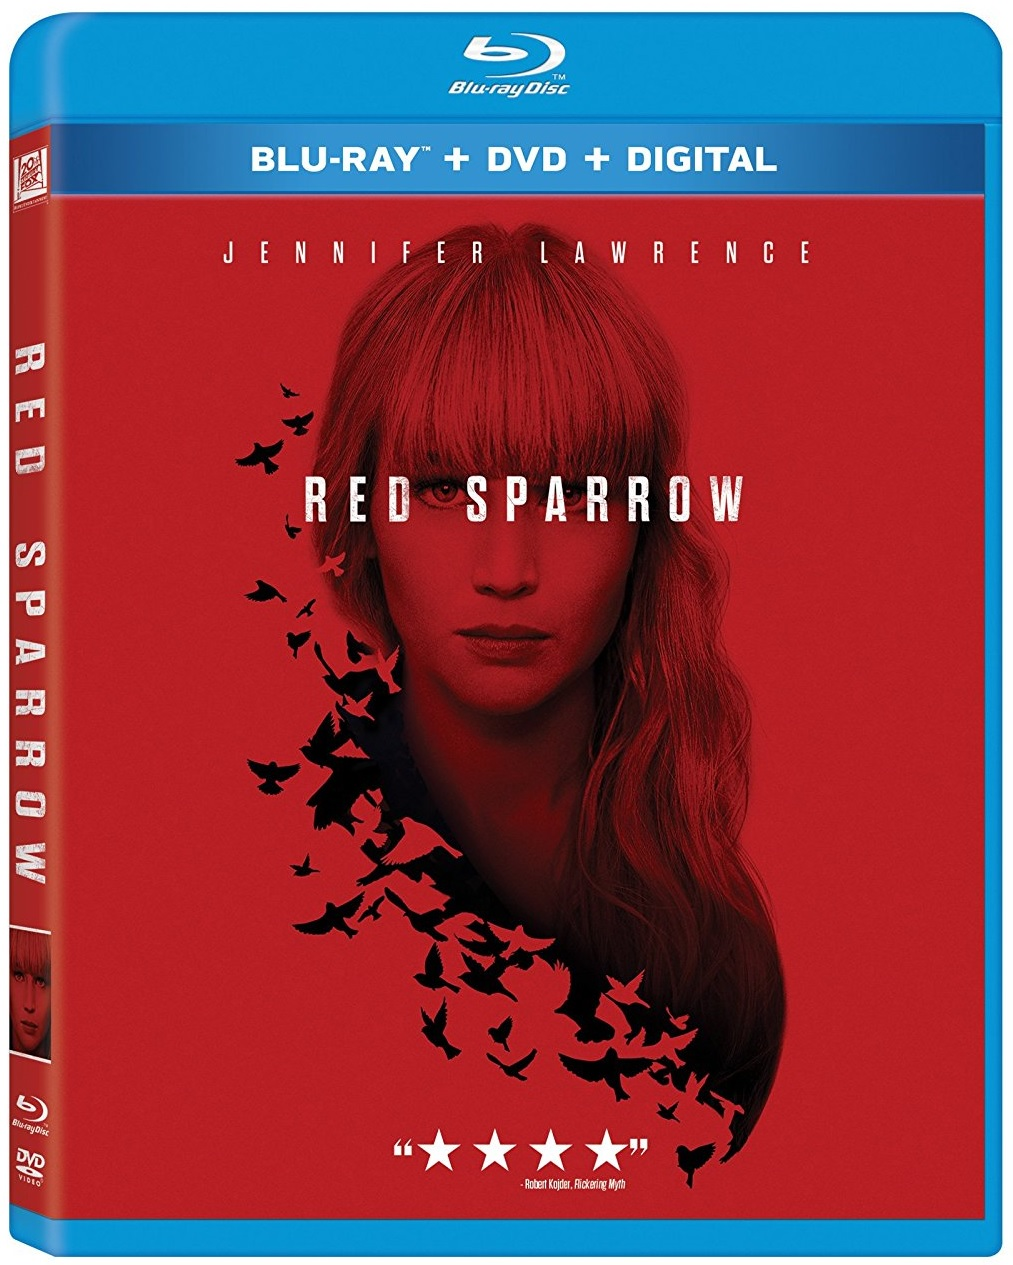 Red Sparrow Blu-ray Review